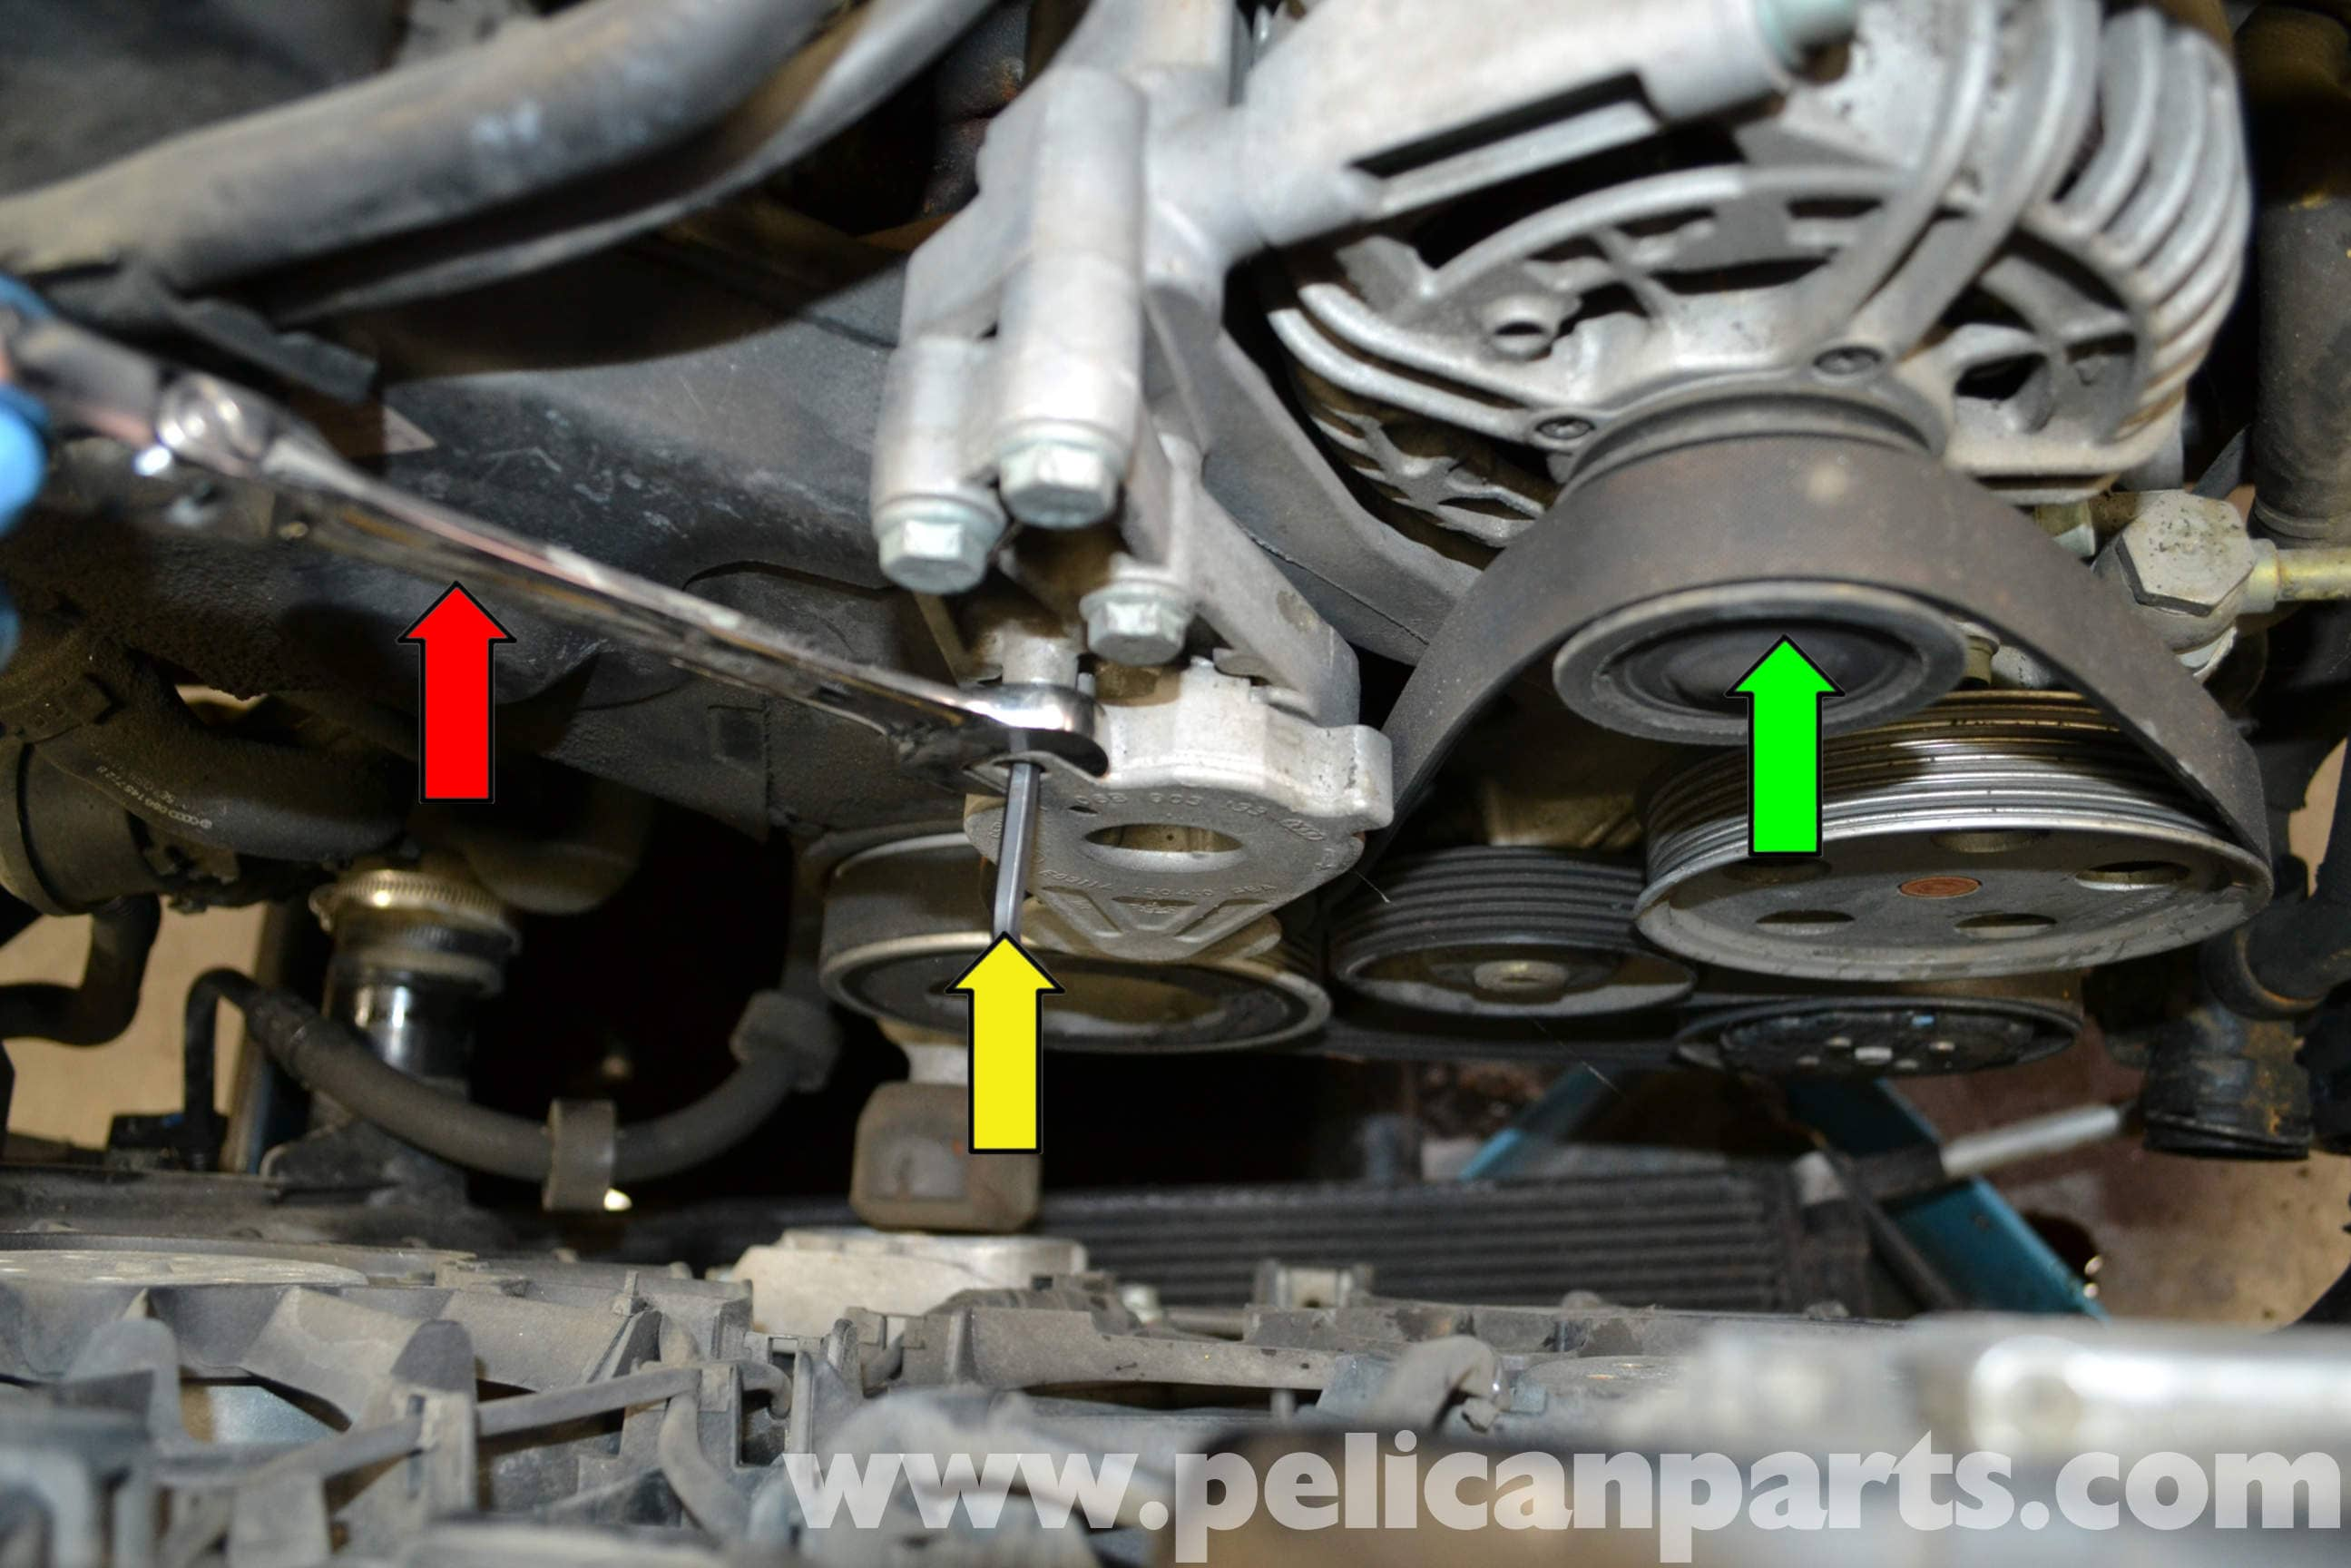 Audi A4 B6 Thermostat Replacement 2002 2008 Pelican Parts Diy 2005 3 2 Timing Large Image Extra